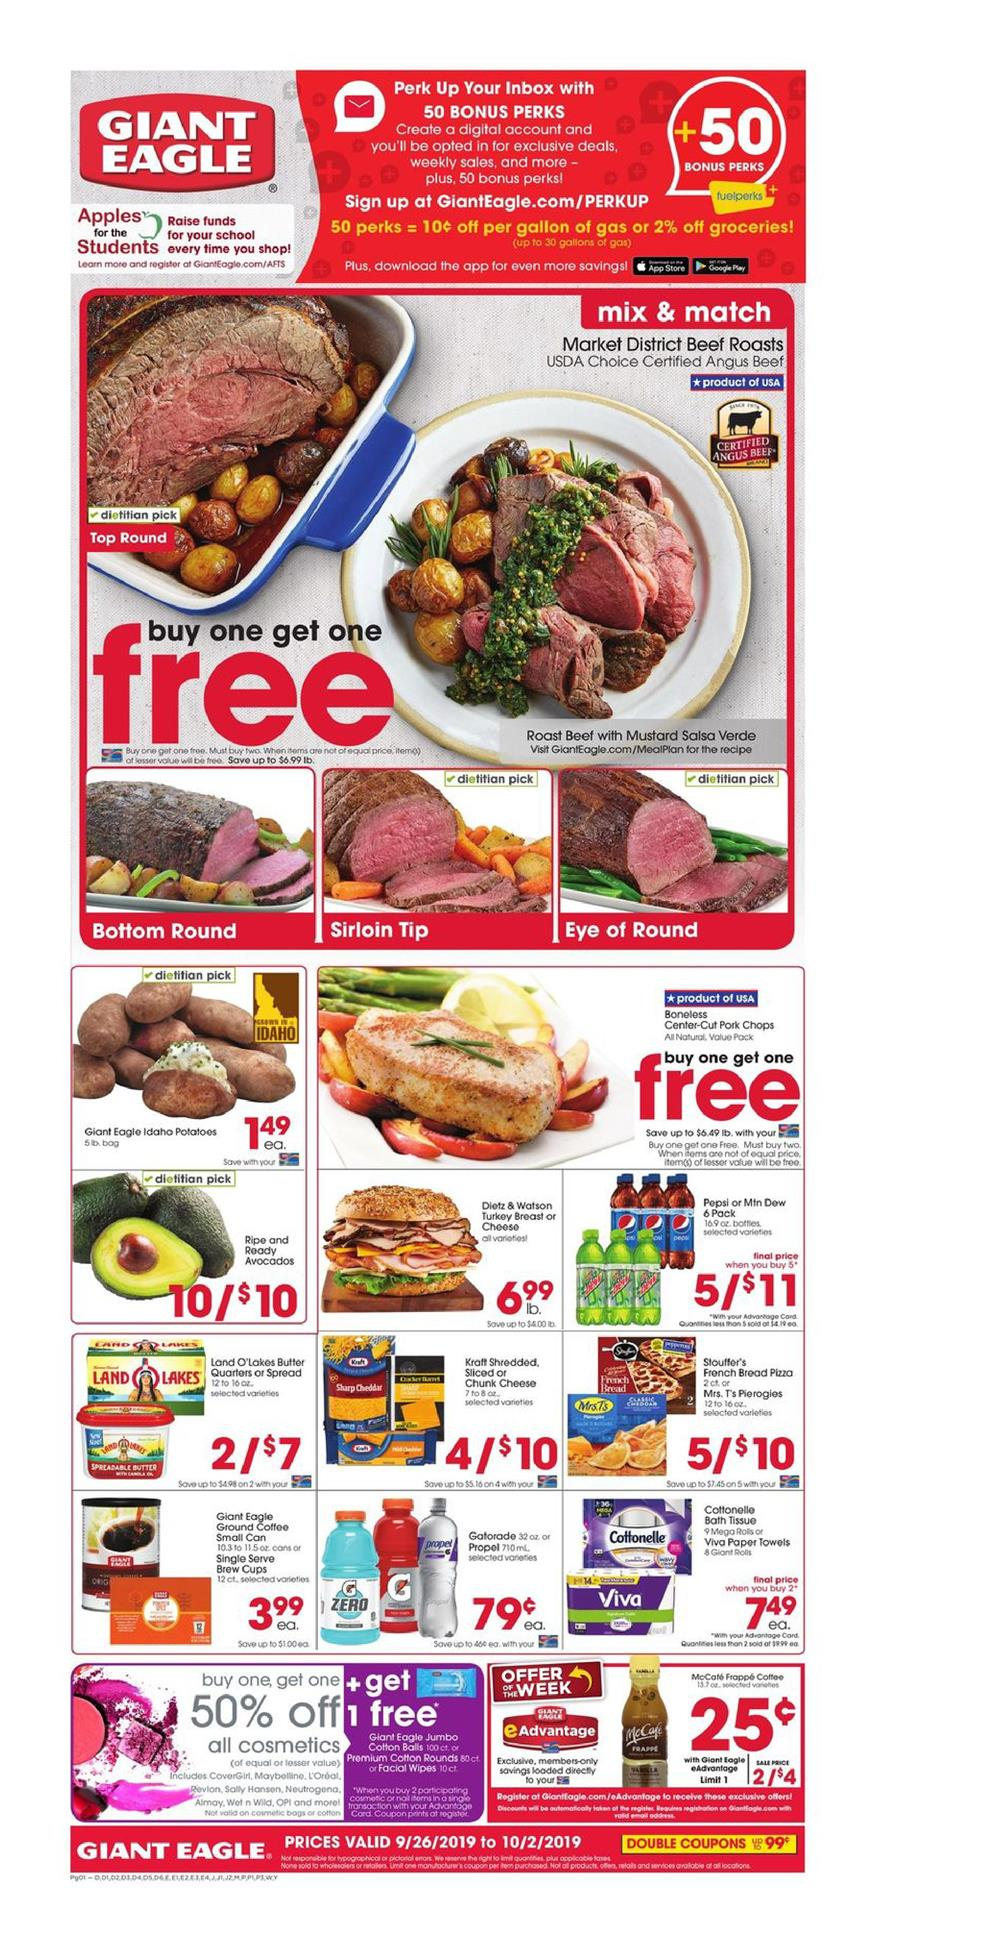 bogo free deals with new giant eagle ad sep 26 oct 2 2019